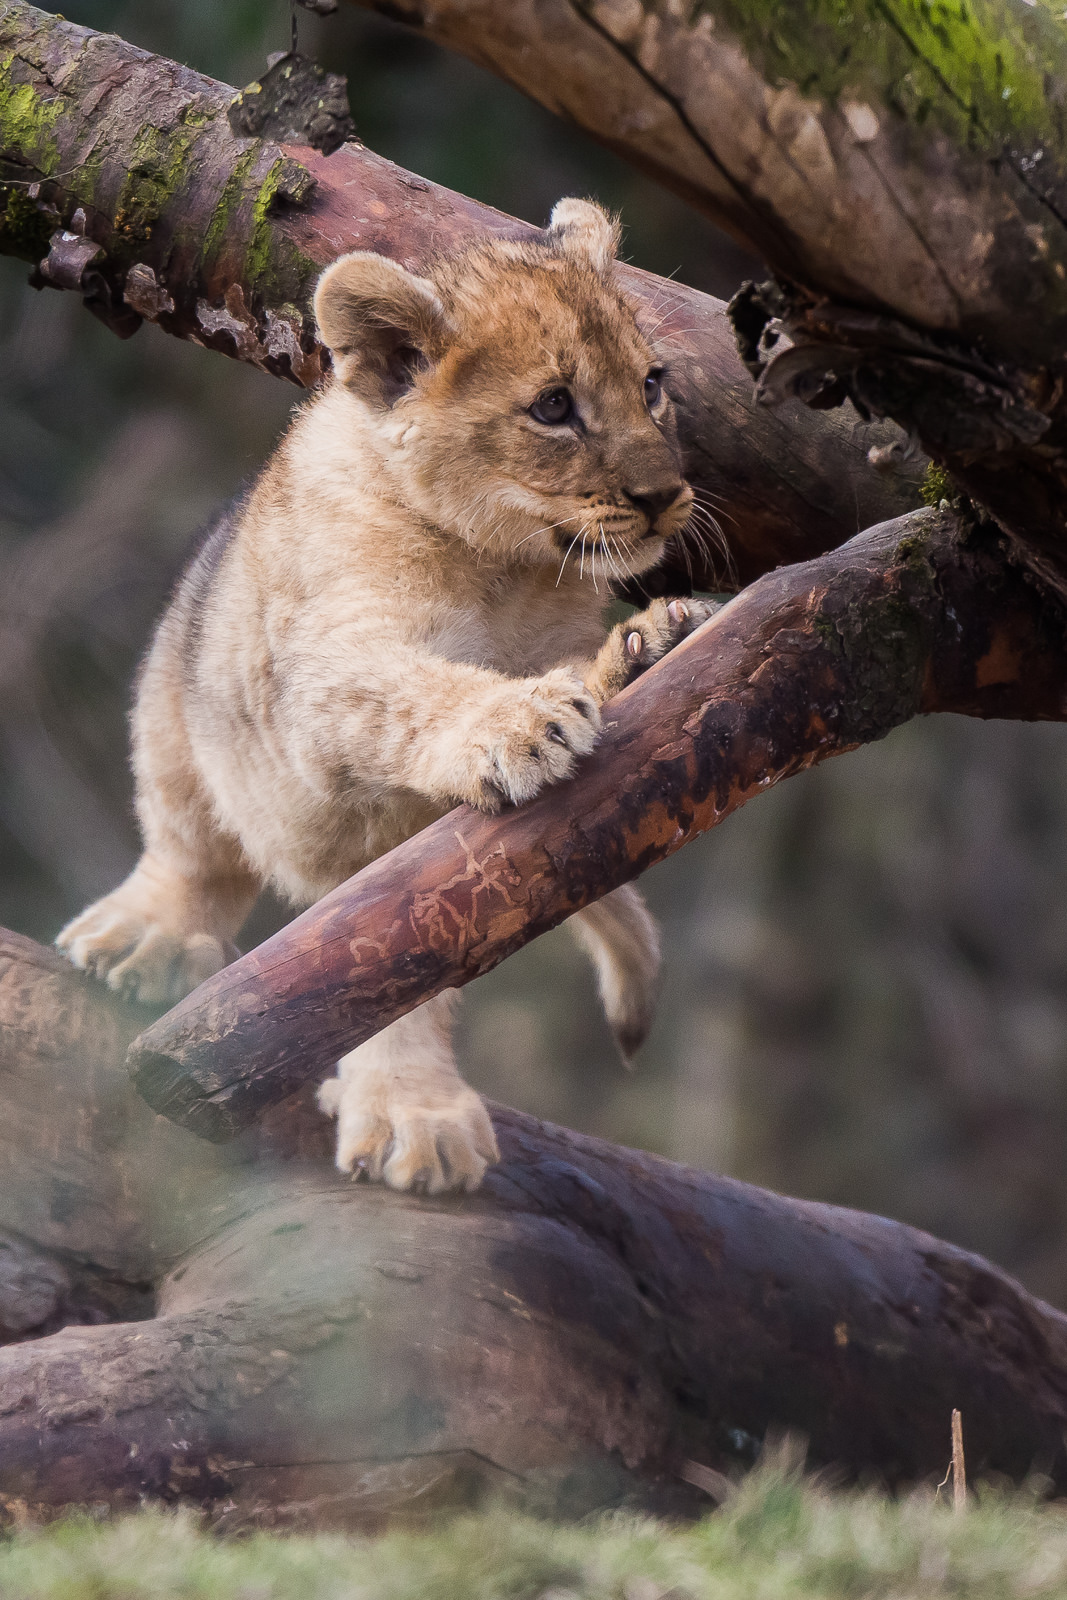 lion baby cute mammal wildlife predator zoo nature animal cat wild